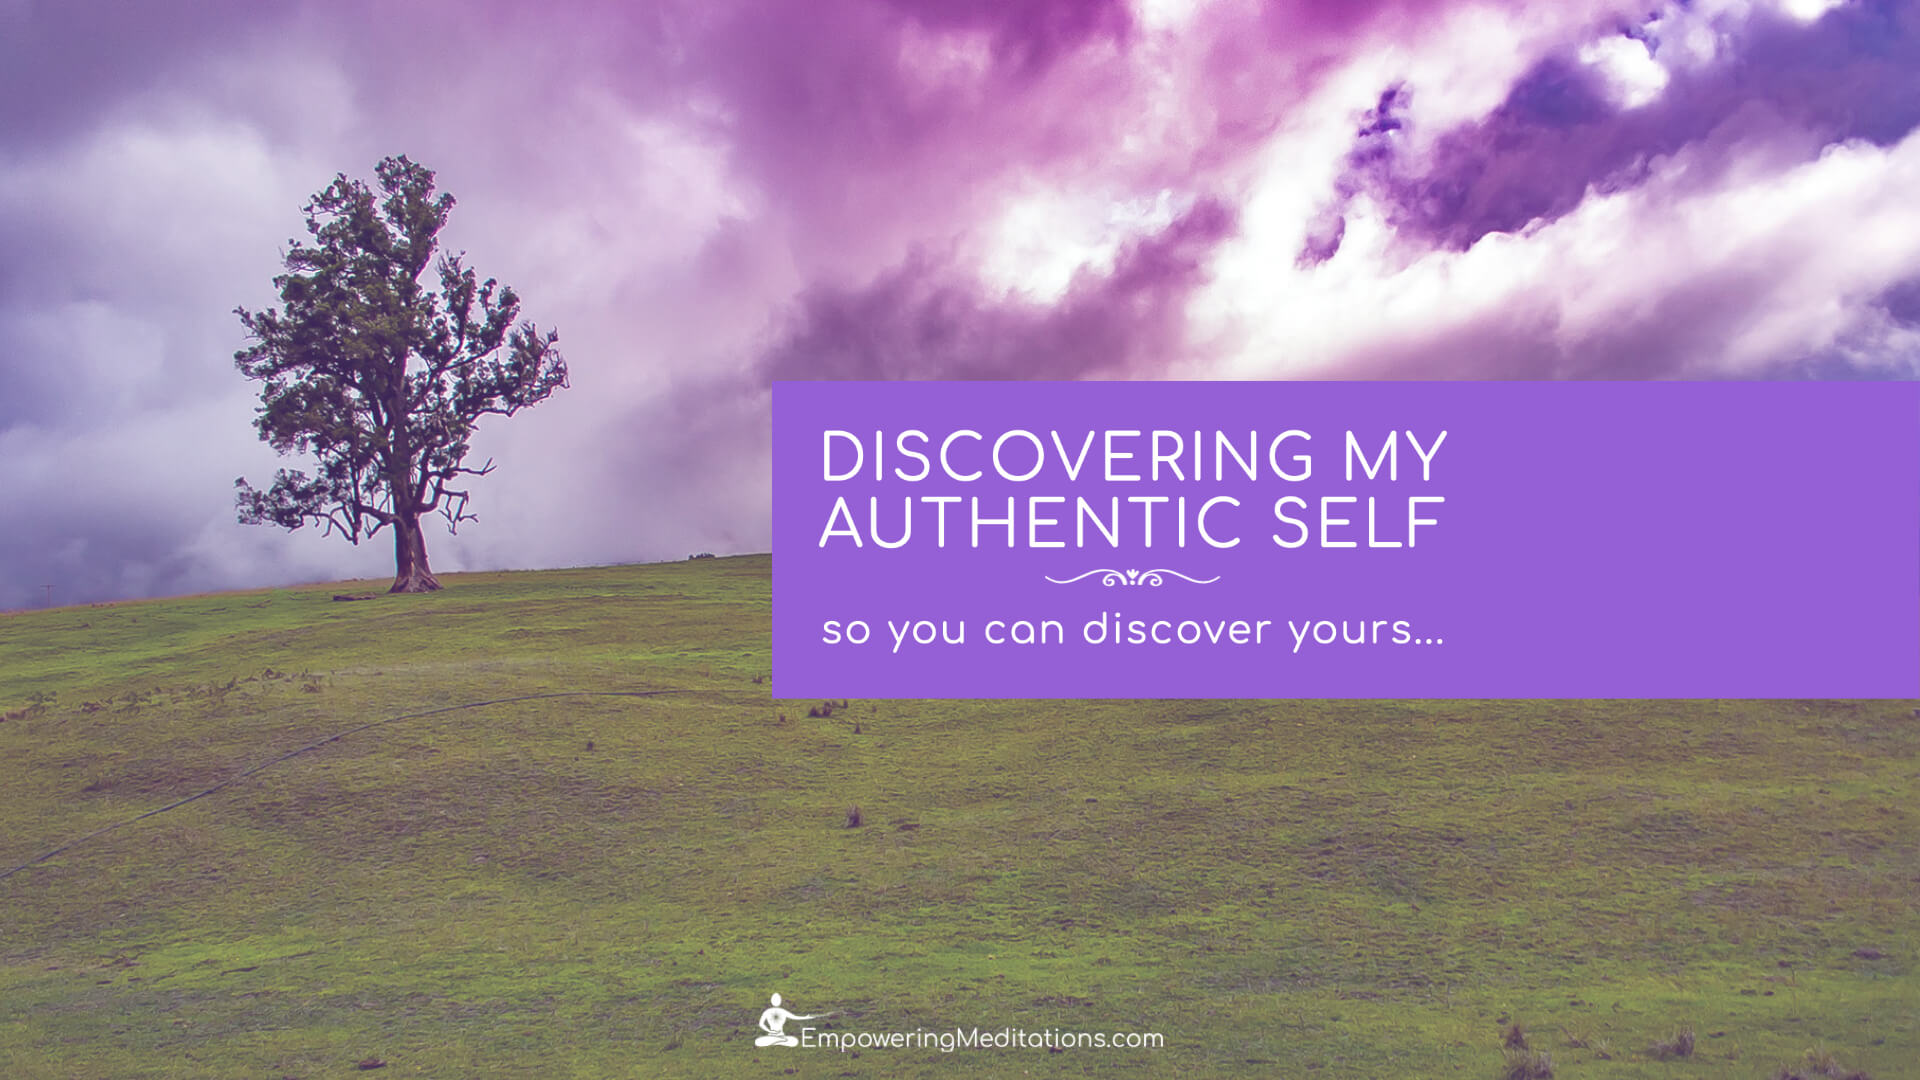 Blog - Discovering my true authentic self - Page